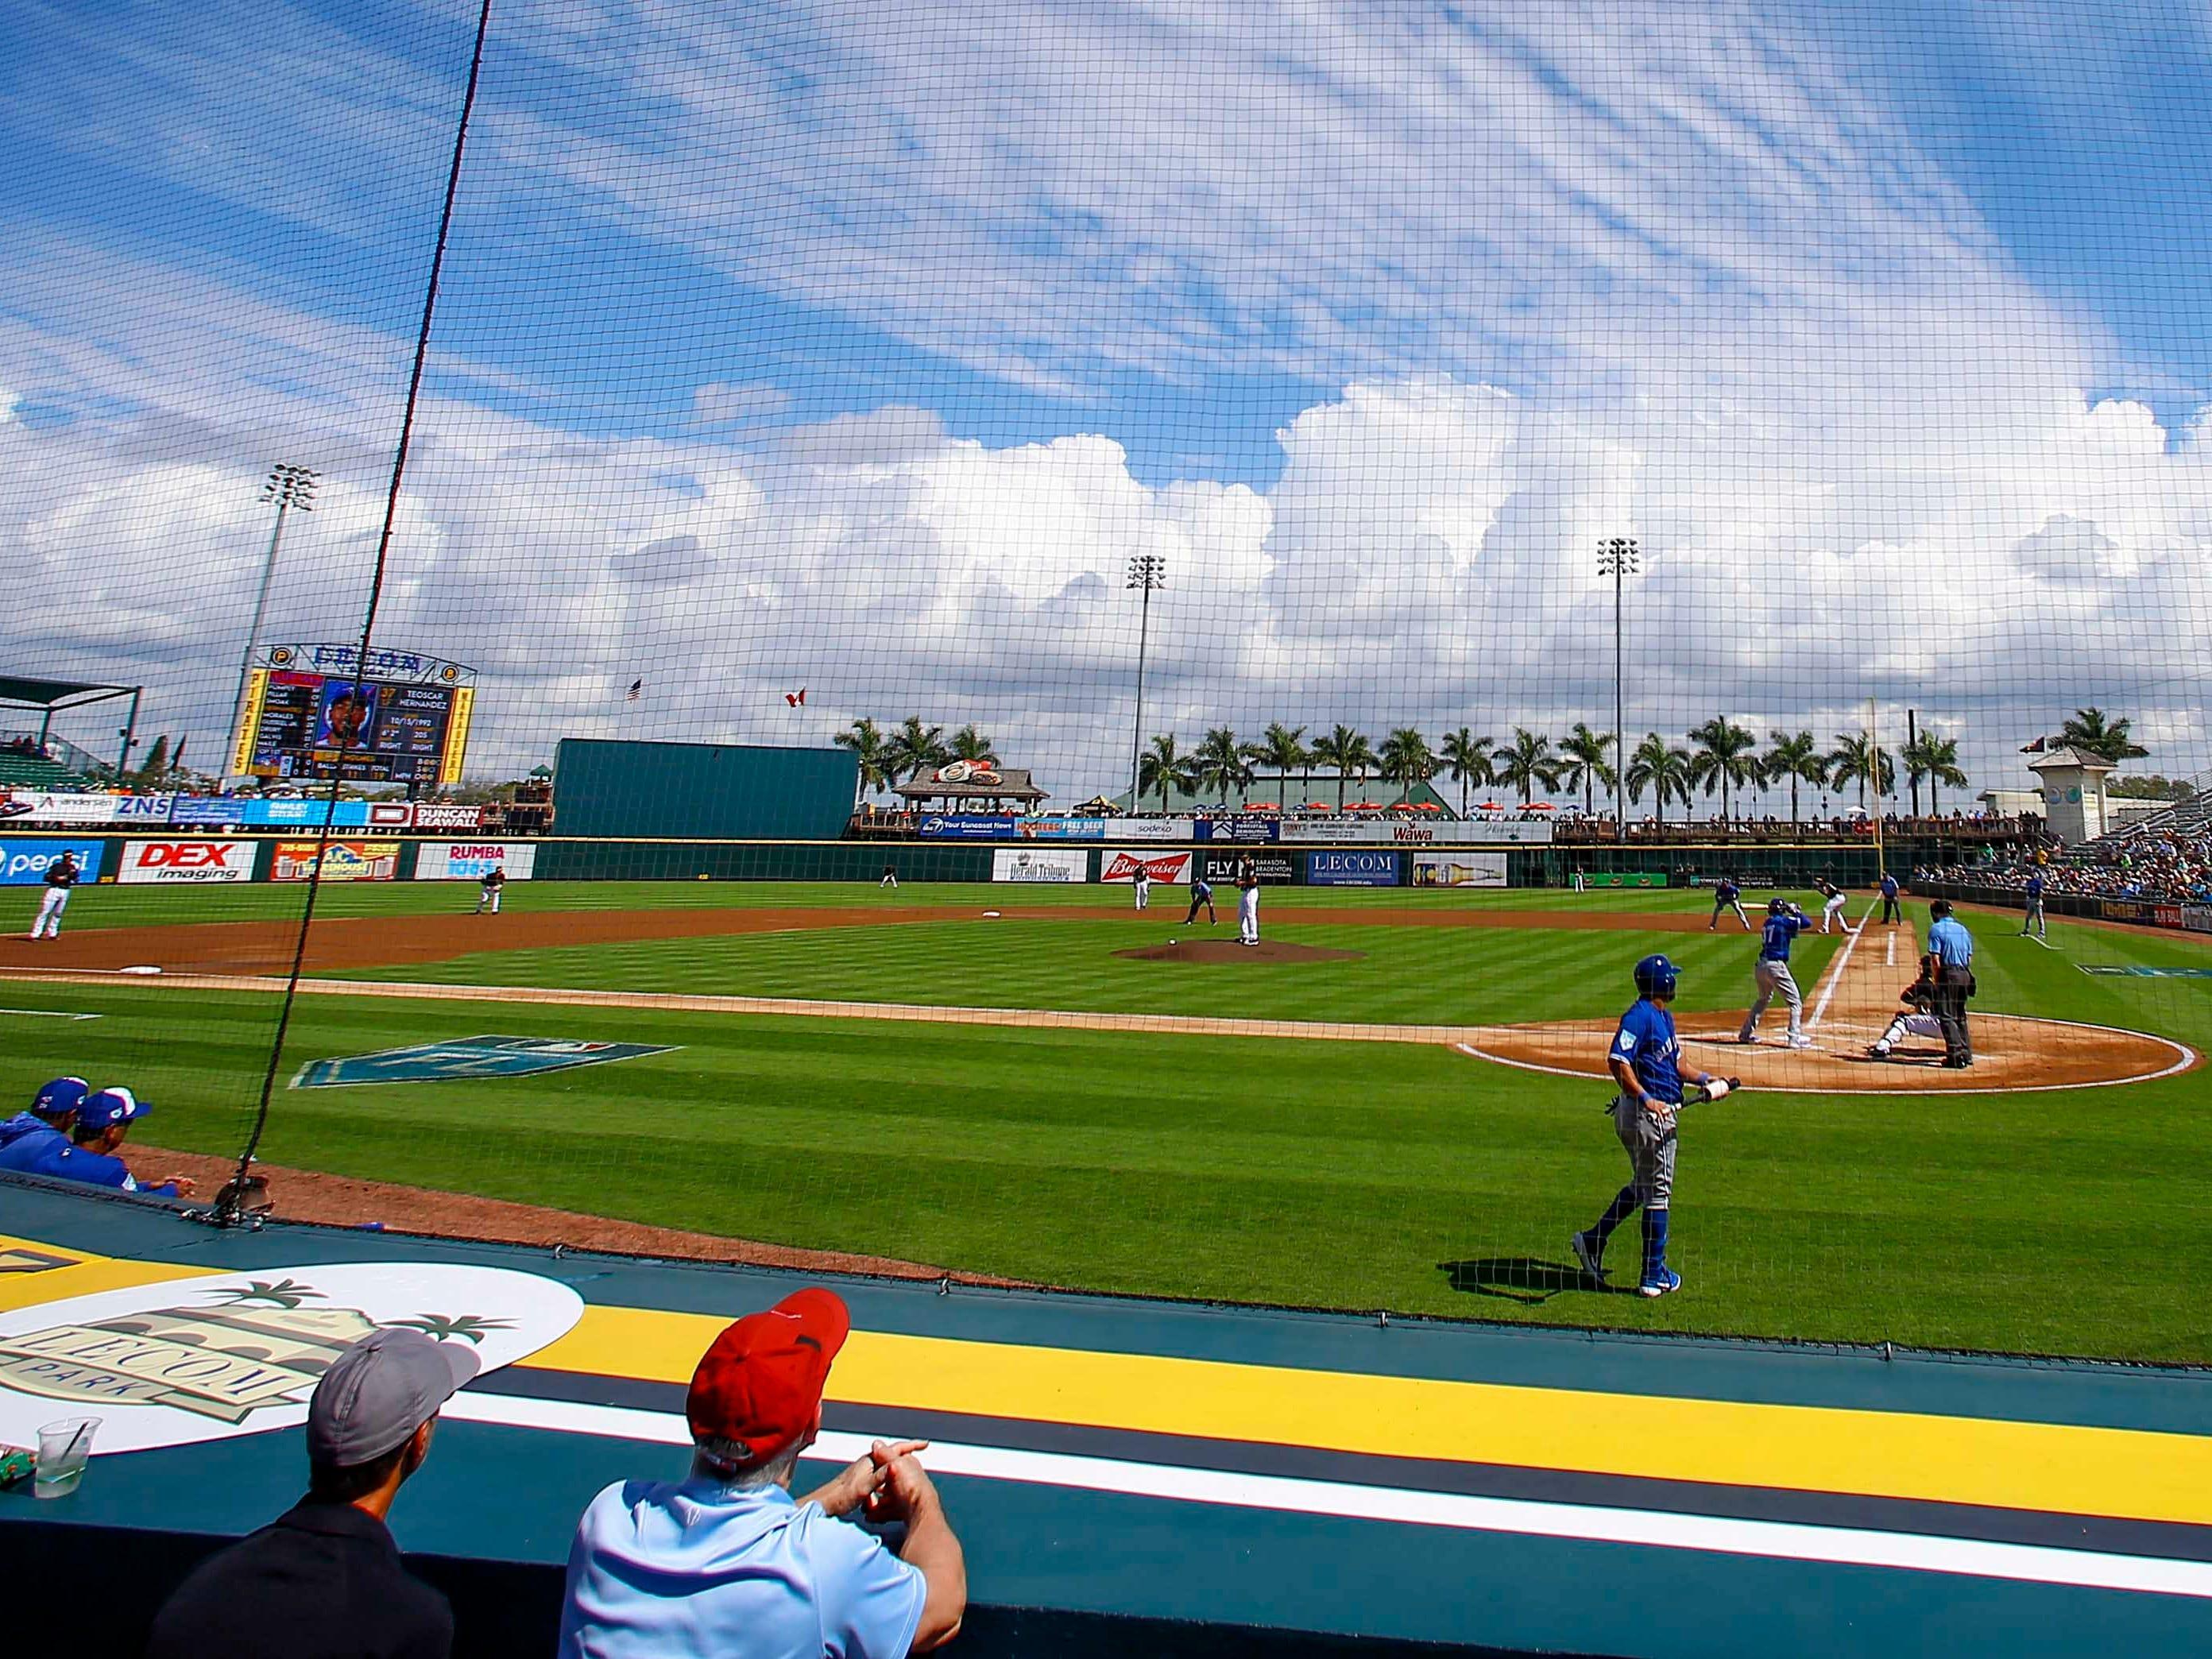 Feb. 27: Fans watch during the first inning of a spring training baseball game between the Pittsburgh Pirates and the Toronto Blue Jays at LECOM Park.